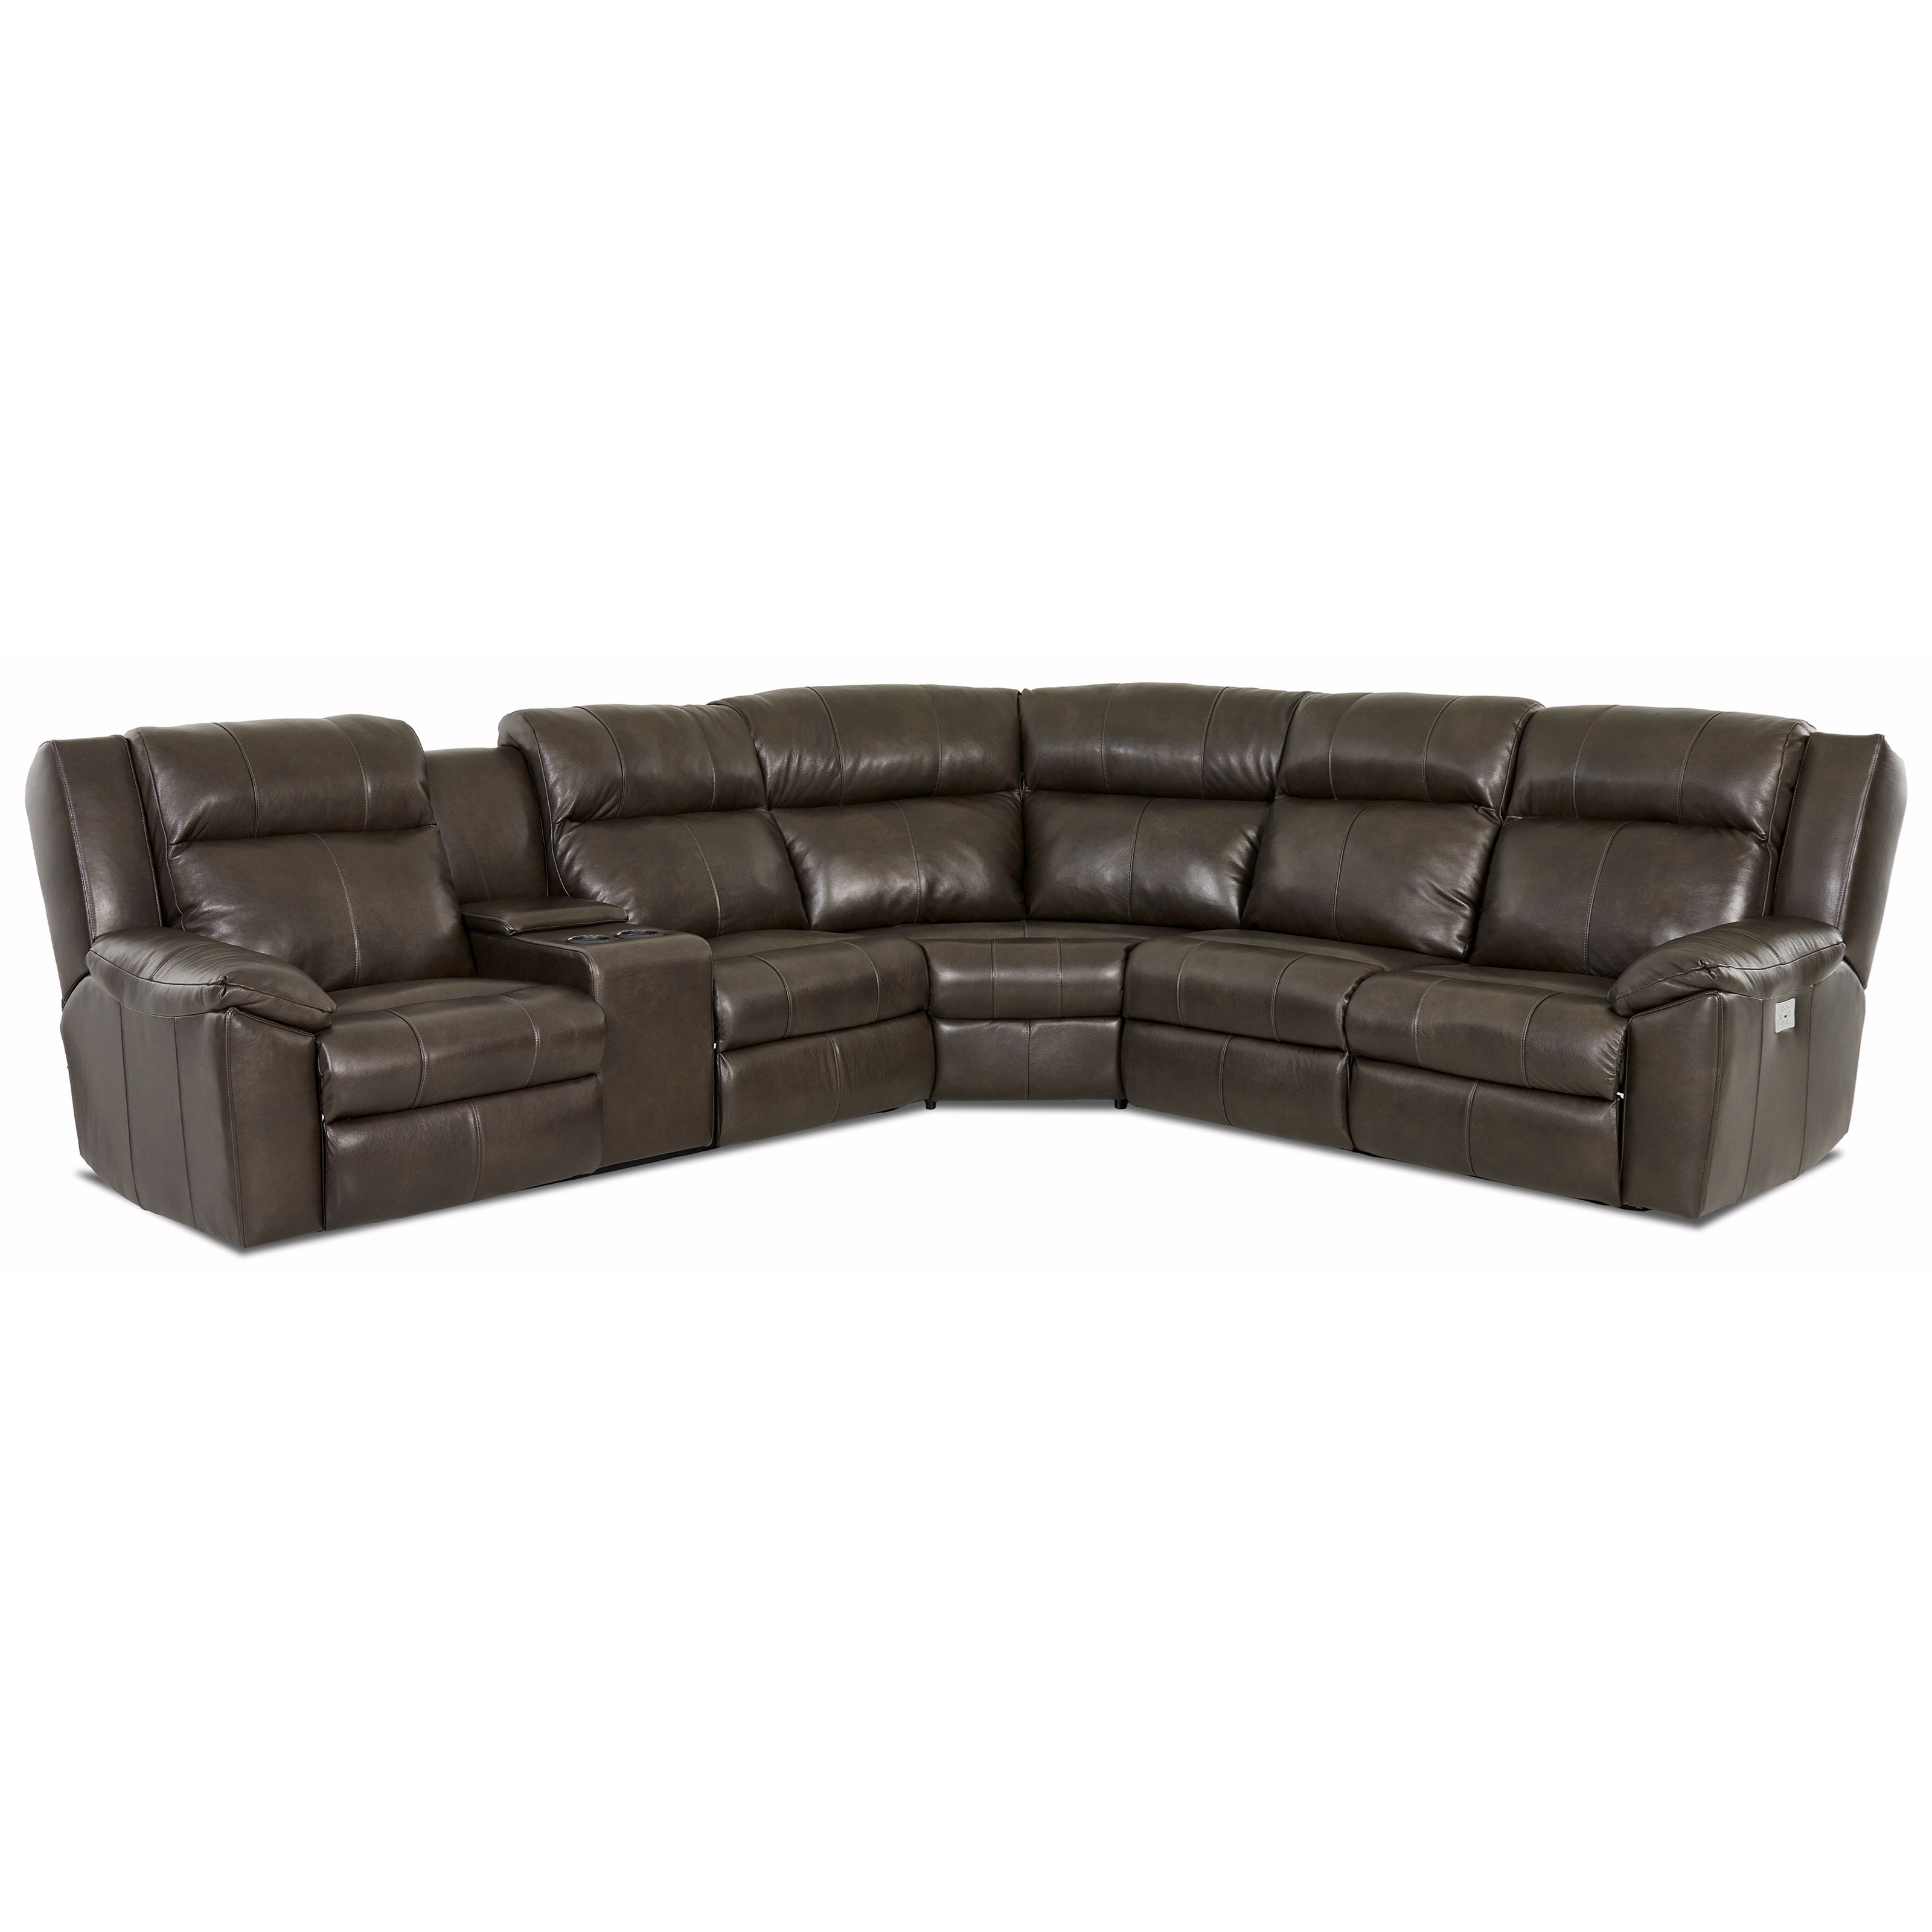 Klaussner Ridley 3 Piece Reclining Sectional with Power